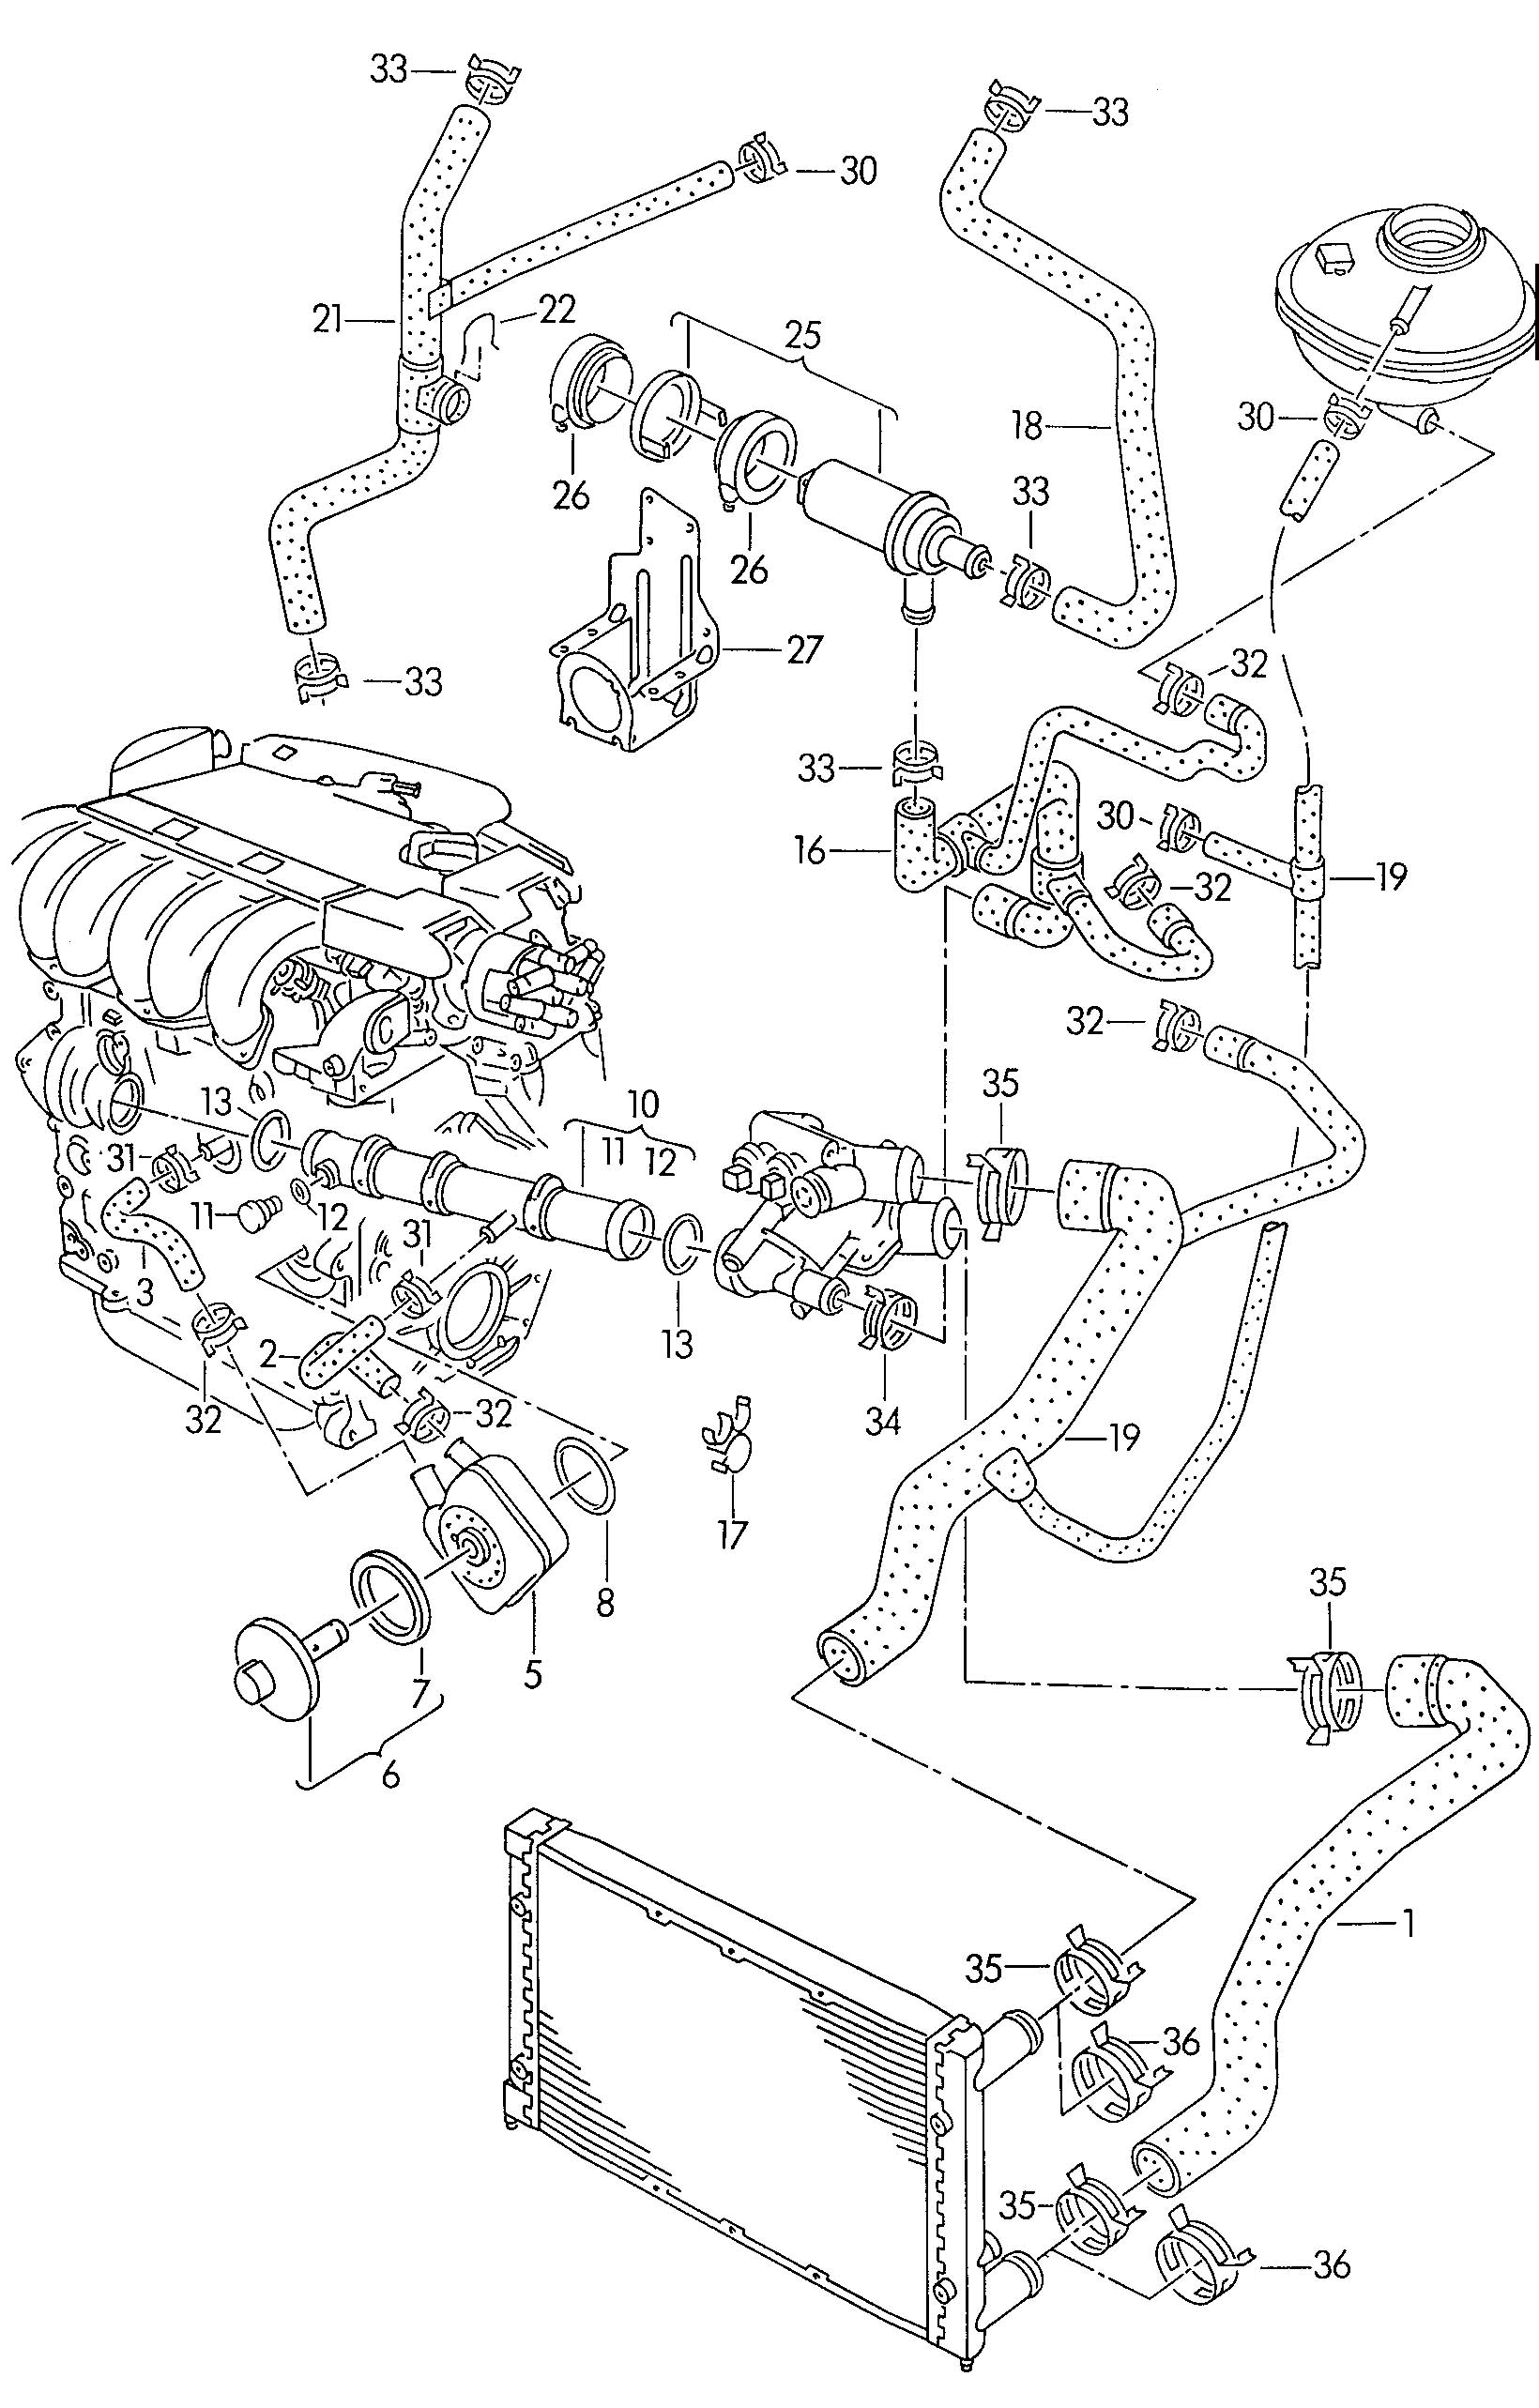 hight resolution of new engine coolant pipe vw corrado jetta 92 02 021 vw engine coolant parts diagram